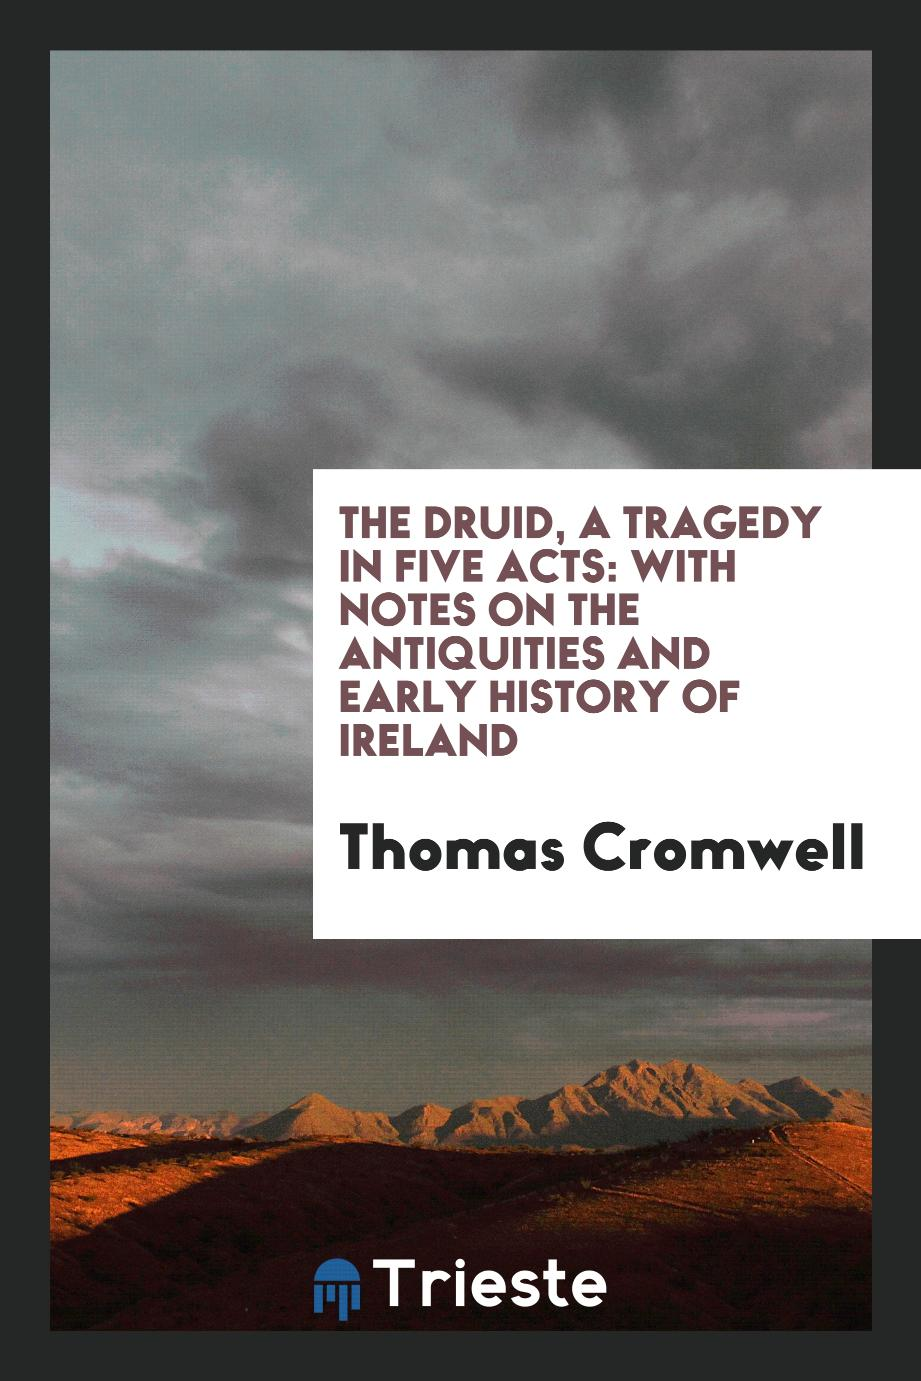 Thomas Cromwell - The Druid, a Tragedy in Five Acts: With Notes on the Antiquities and Early History of Ireland